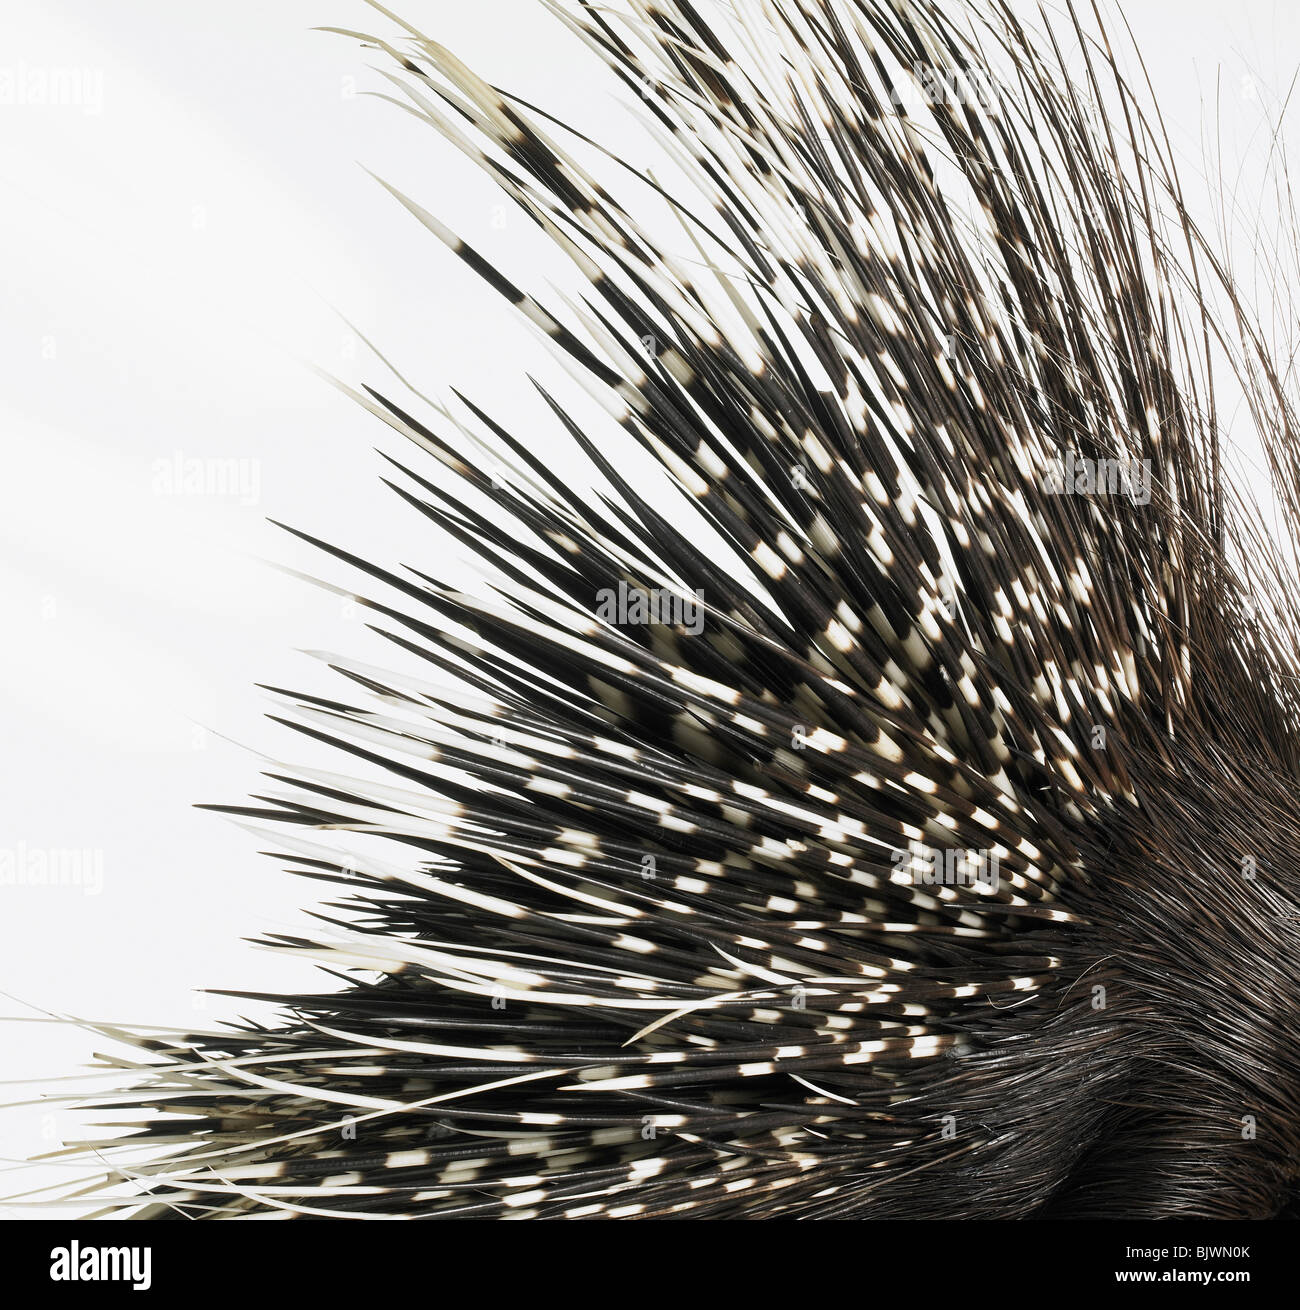 Porcupine quills Stock Photo